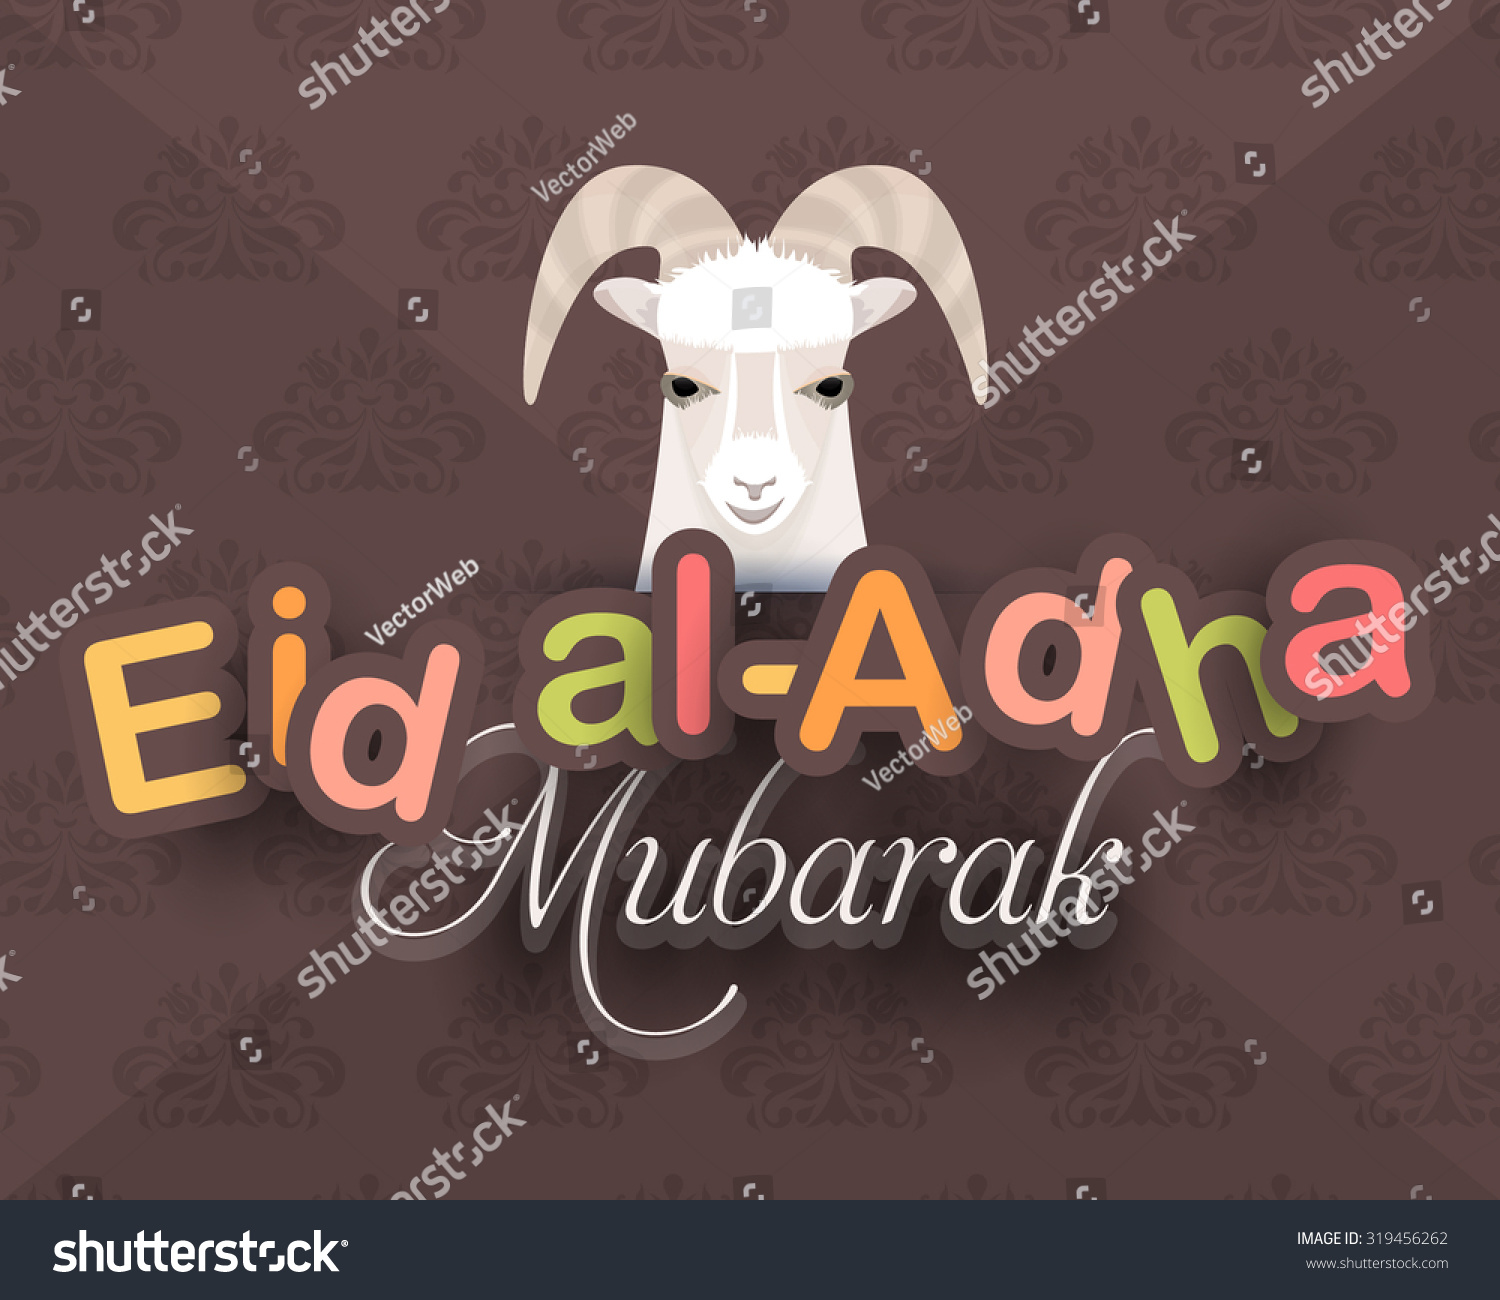 Stylish Text Eid Al Adha Mubarak Qurban Stock Vector Royalty Free